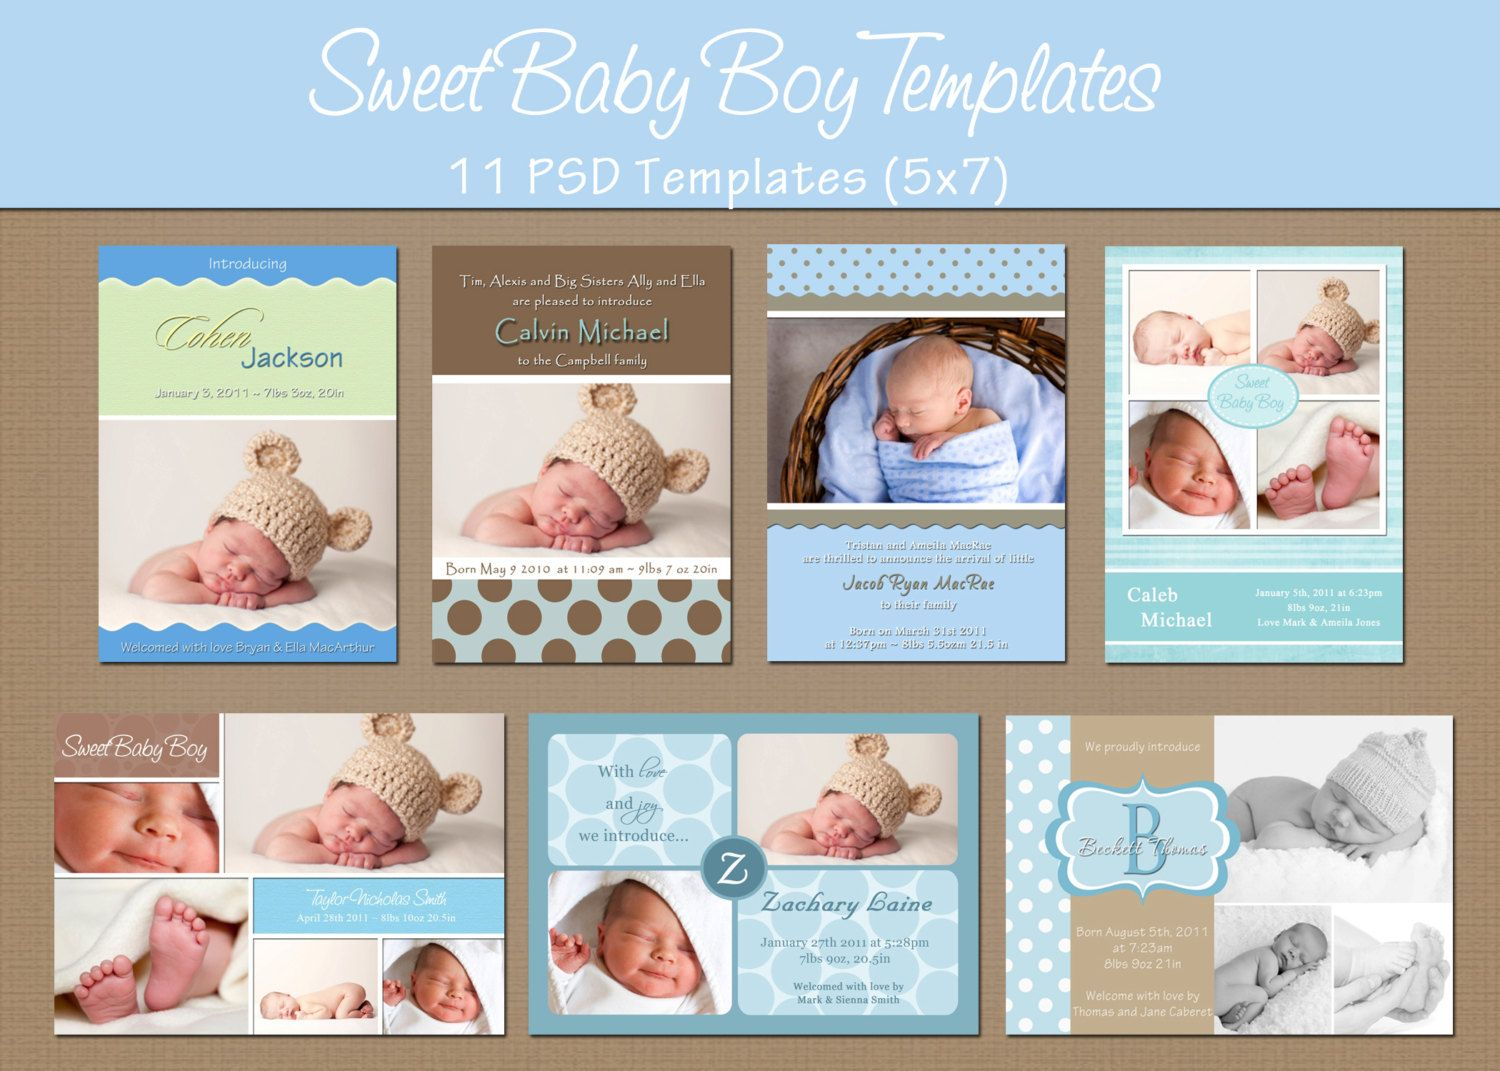 Birth Announcement Templates - Baby Boy - 11Psd Commercial Use Templates -  Buy 2 Sets Get 1 Free. $29.99, Via Etsy.